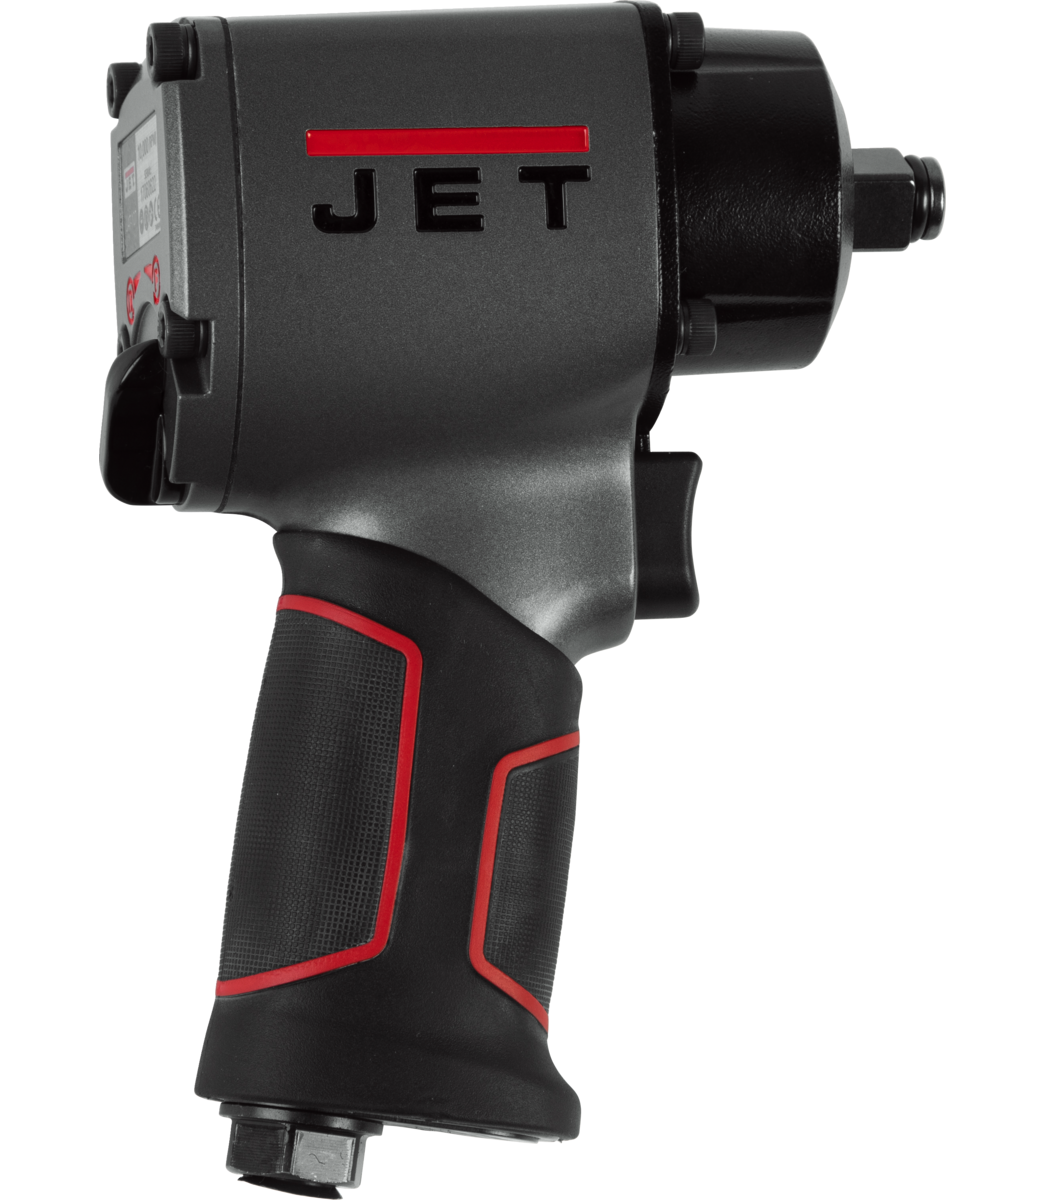 "JAT-107, 1/2"" Compact Impact Wrench"